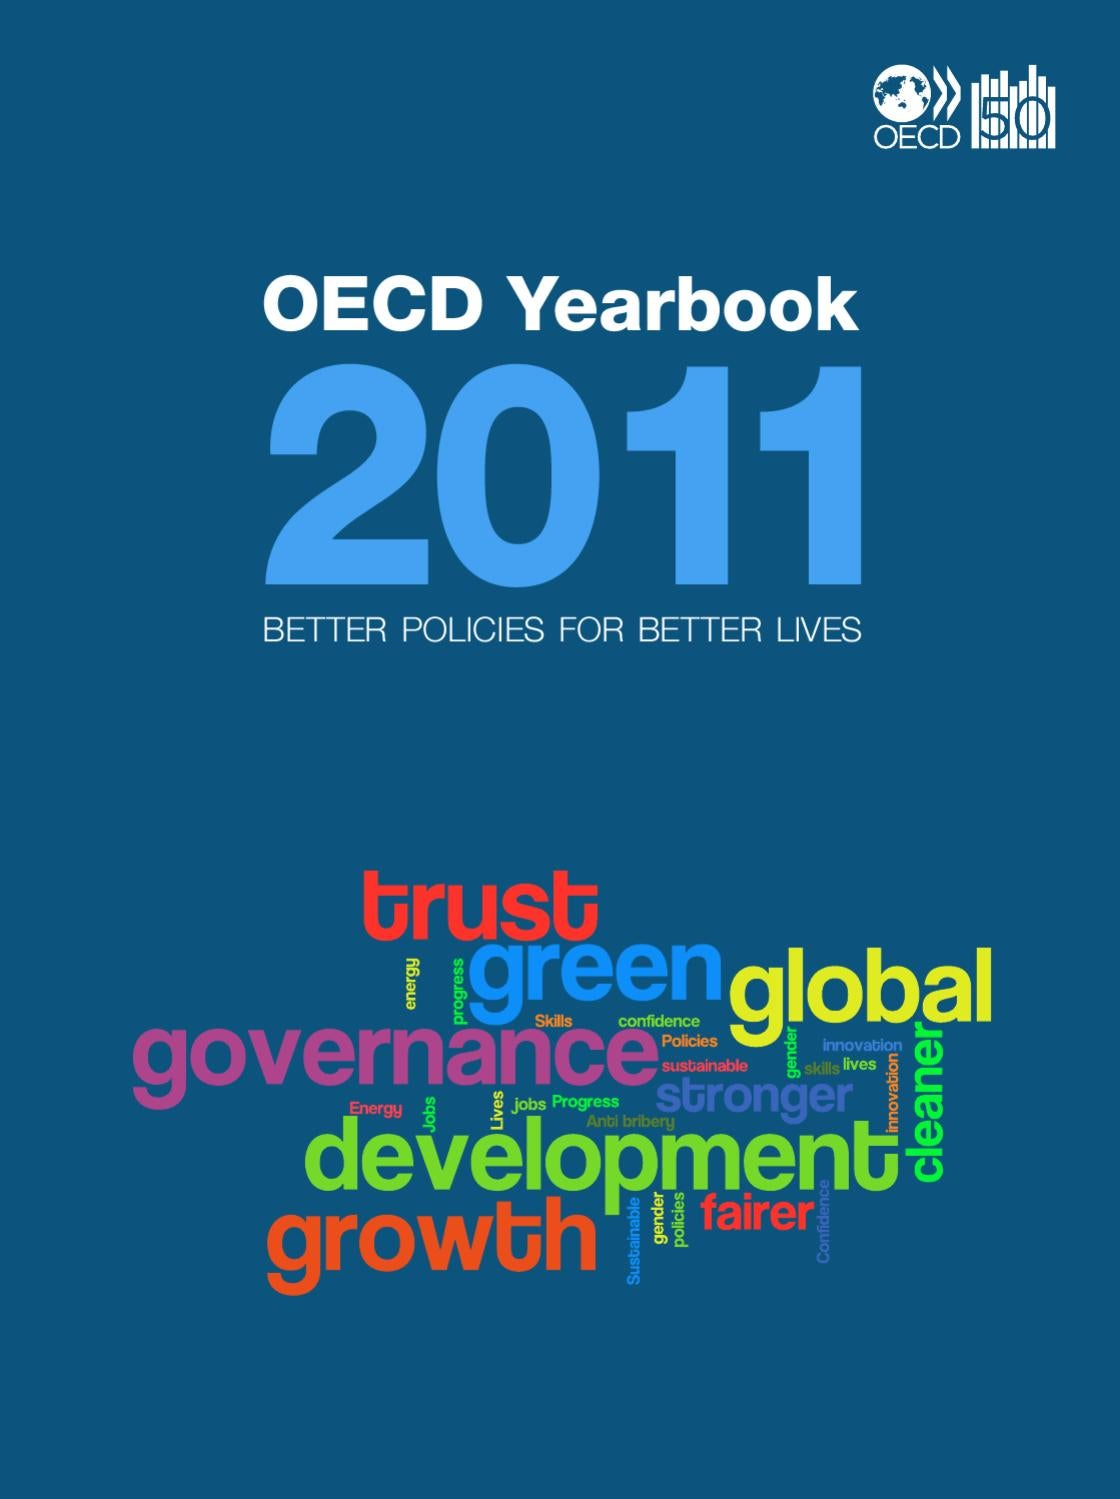 Oecd Yearbook 2011 By Issuu Voucher Giant Rp 500000